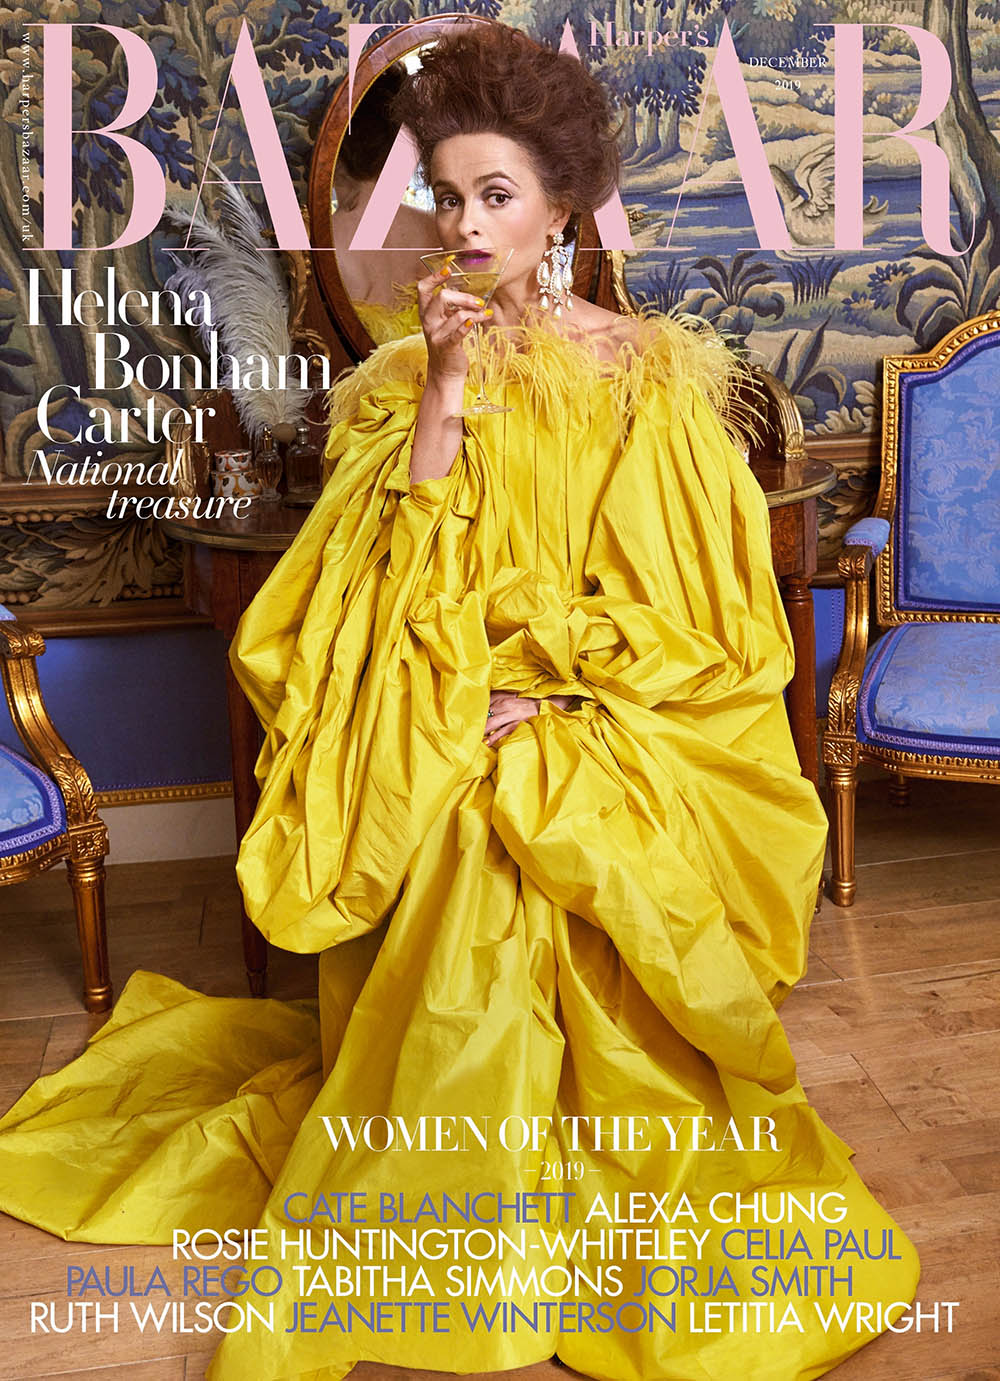 Helena Bonham Carter covers Harper's Bazaar UK December 2019 by Pamela Hanson